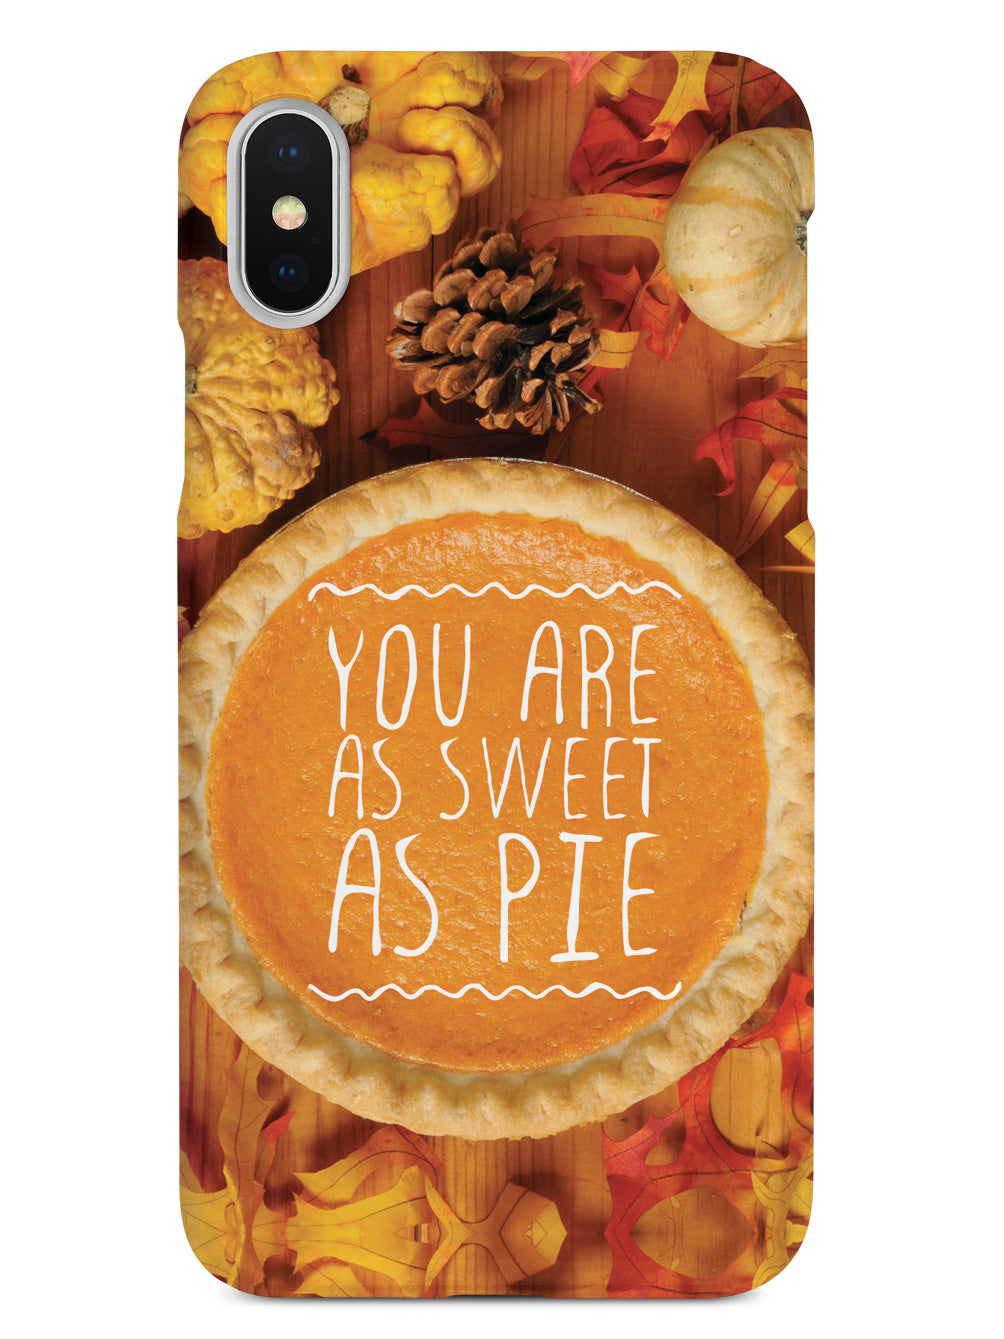 Sweet as Pie - Black Case